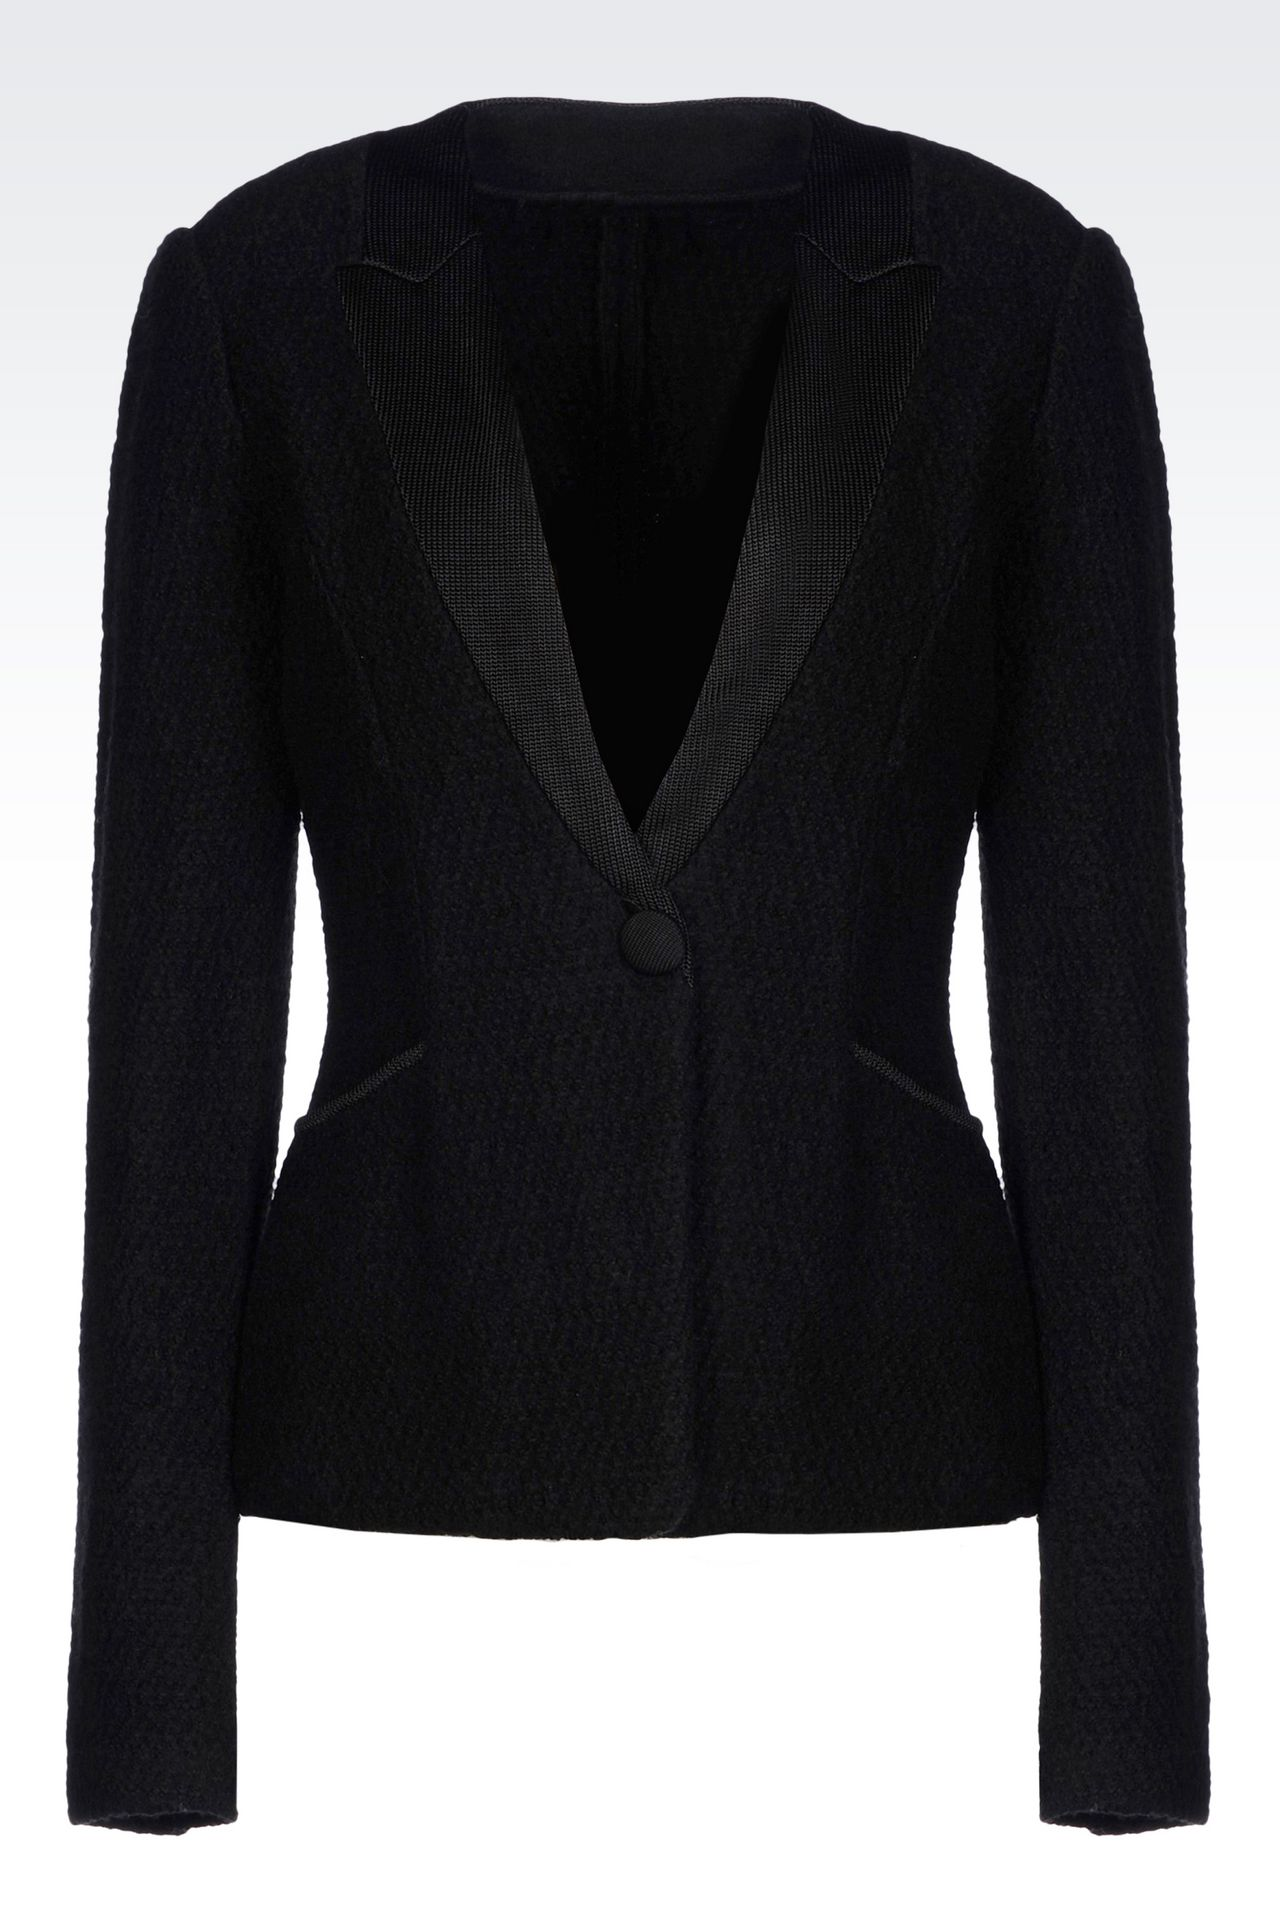 JACKET IN BOILED WOOL: One button jackets Women by Armani - 0